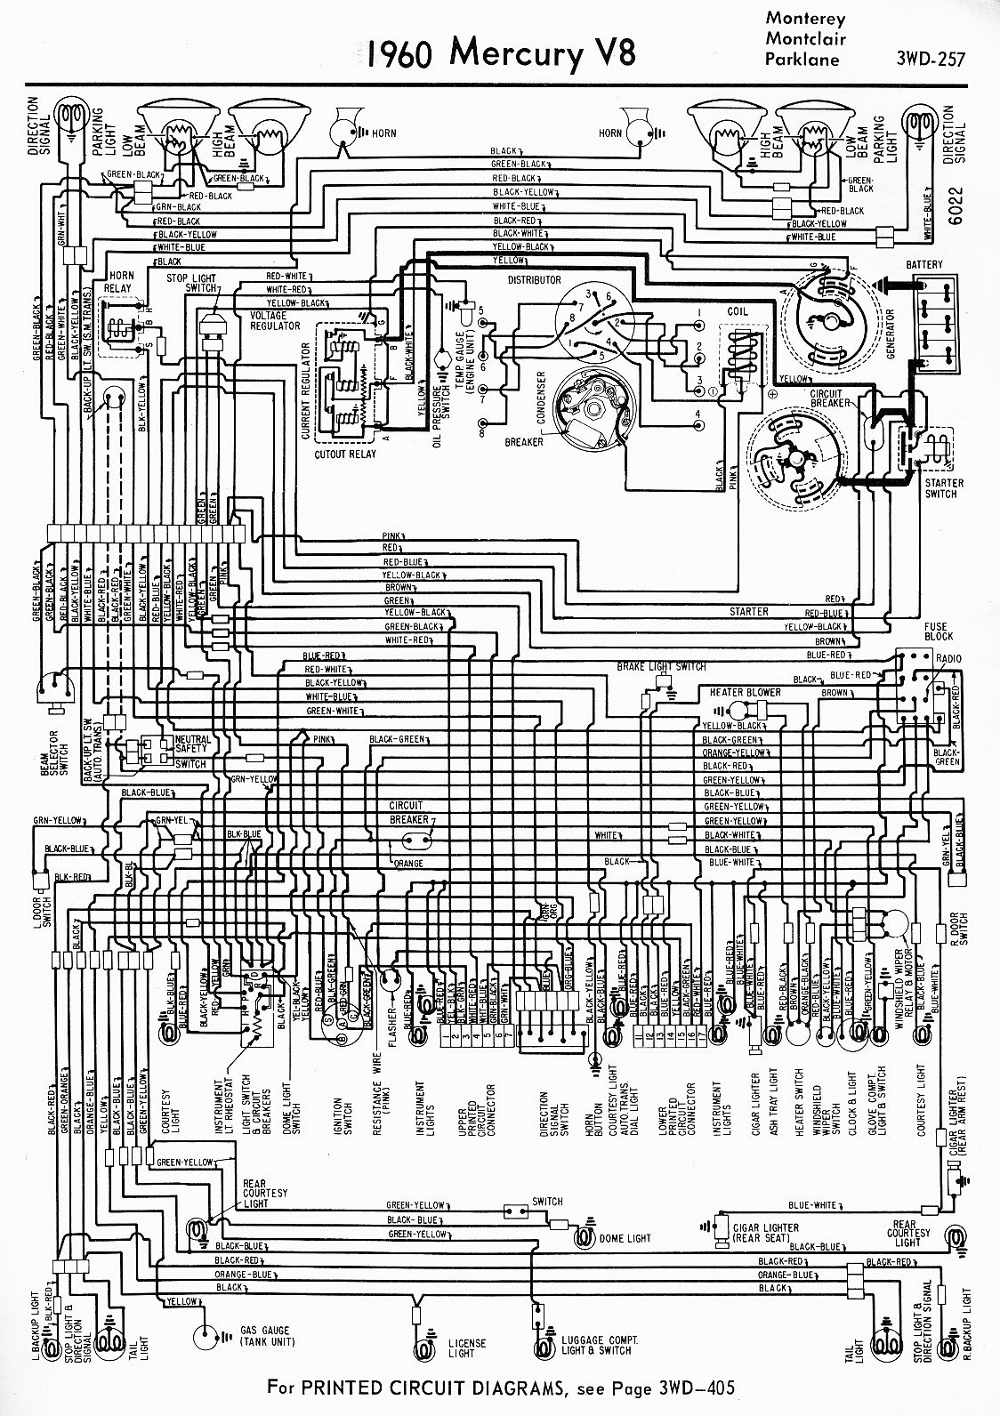 2005 mercury monterey wiring diagram wiring diagram tags 2005 mercury monterey engine diagram [ 1000 x 1416 Pixel ]